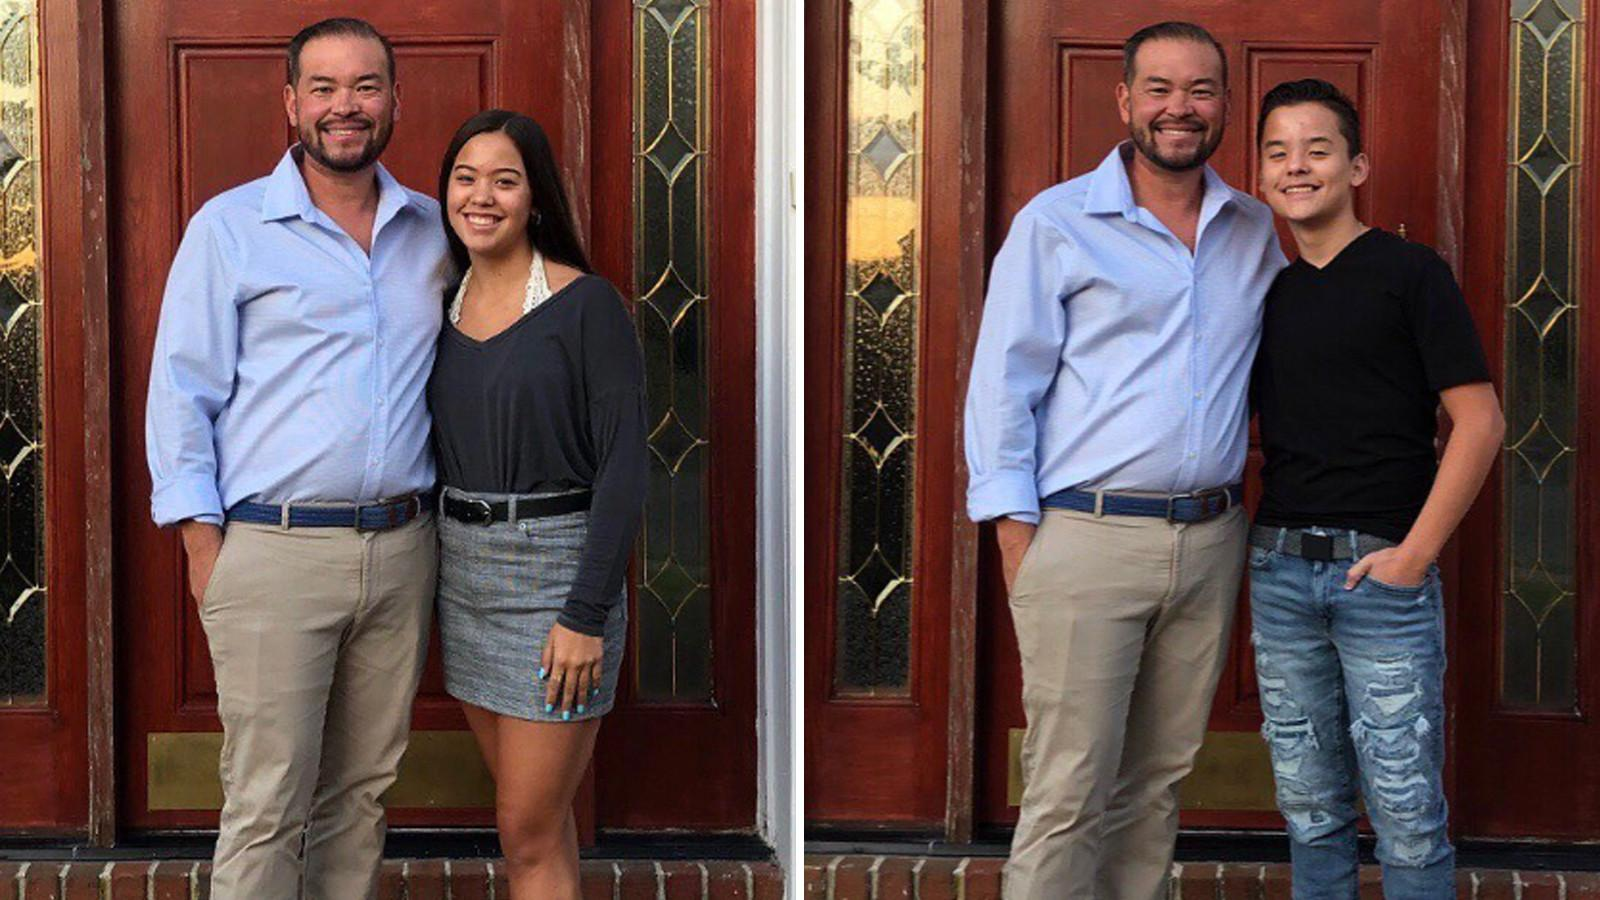 Jon Gosselin And Kids Collin And Hannah Fly To The Caribbean To Spend Thanksgiving There Amid His Drama With Kate!